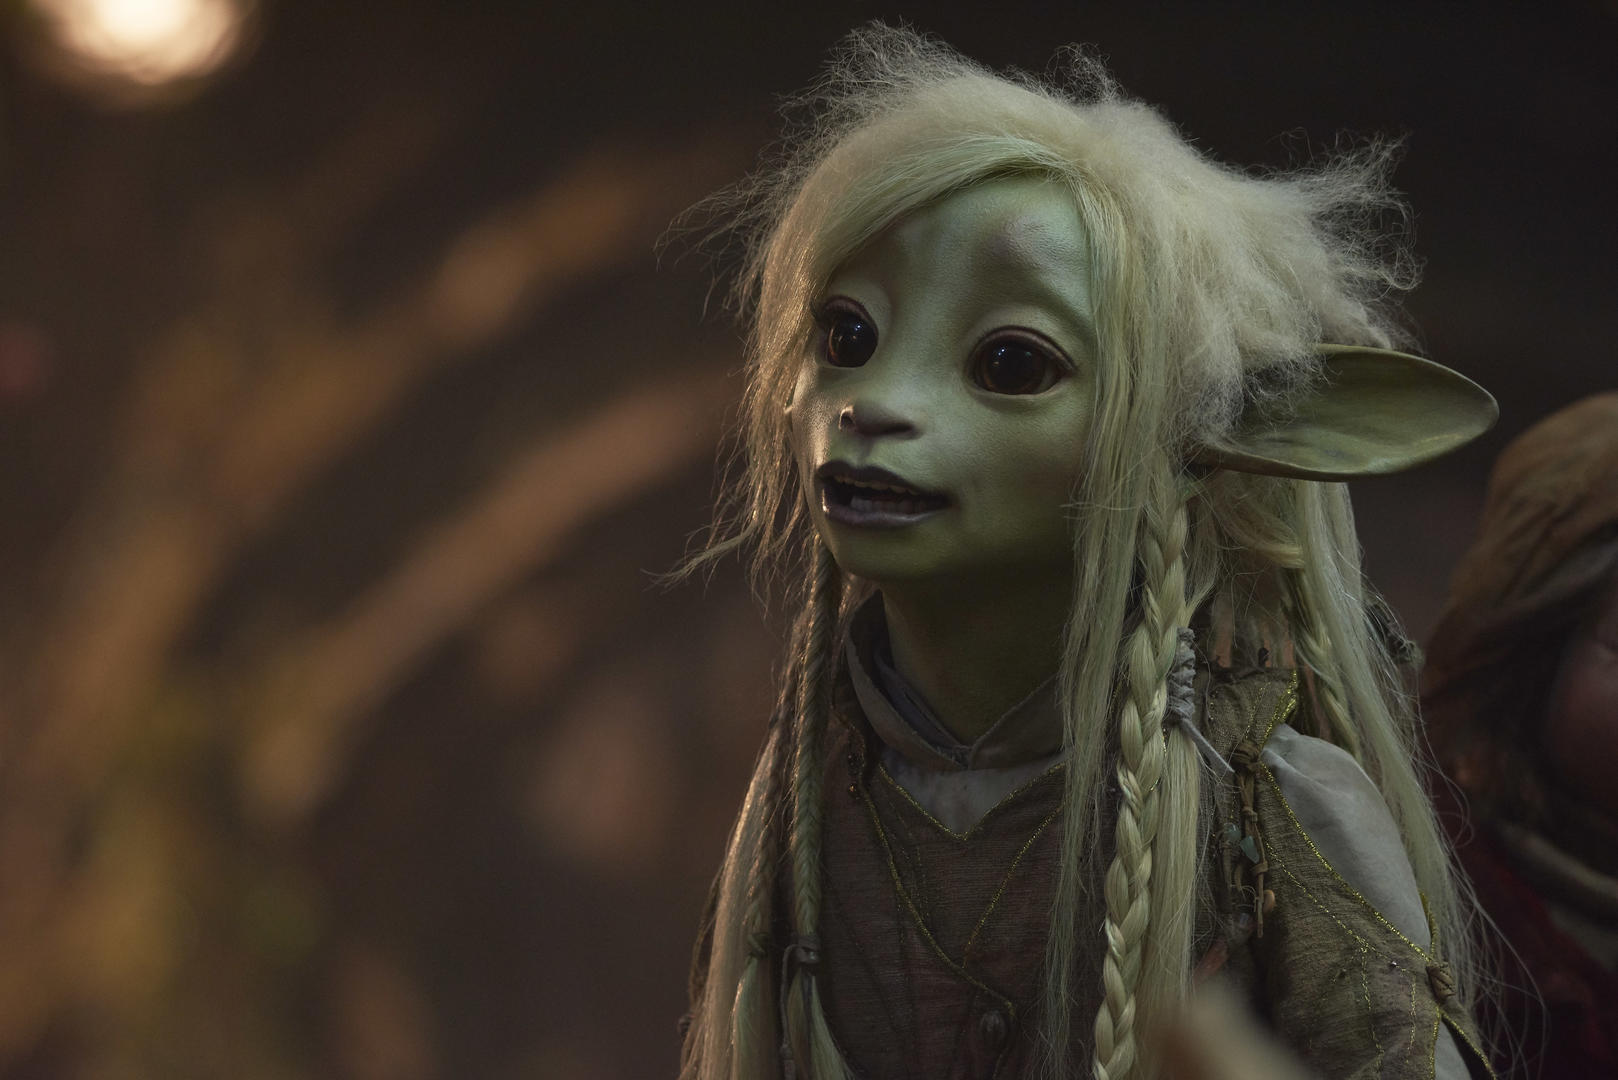 The Dark Crystal: Age of Resistance, courtesy of Netflix prequel series